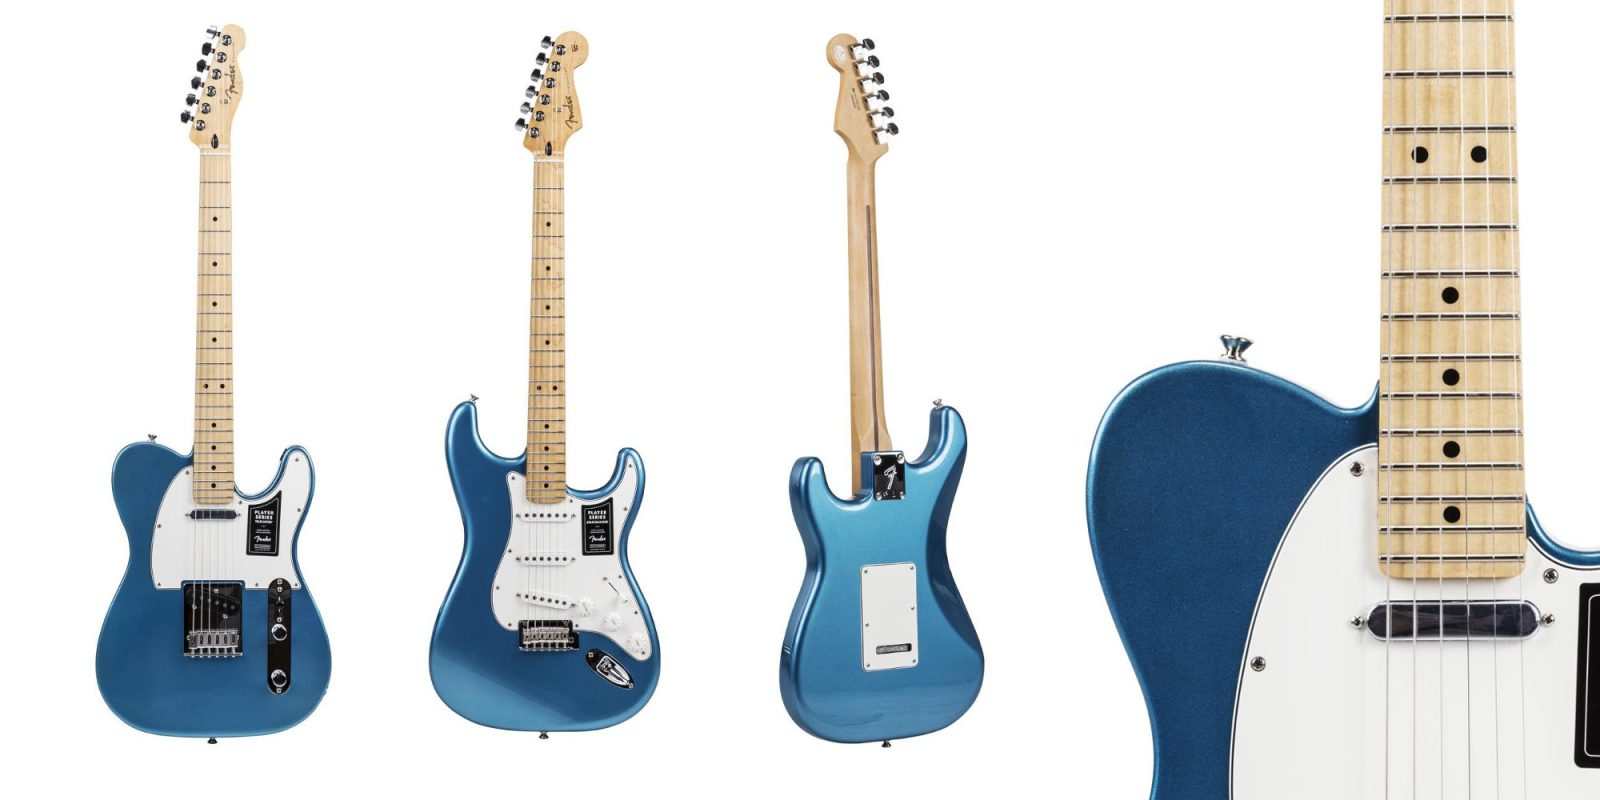 Lake Placid Blue Fender Strat or Tele Guitars for $549 (Up to $225 off)